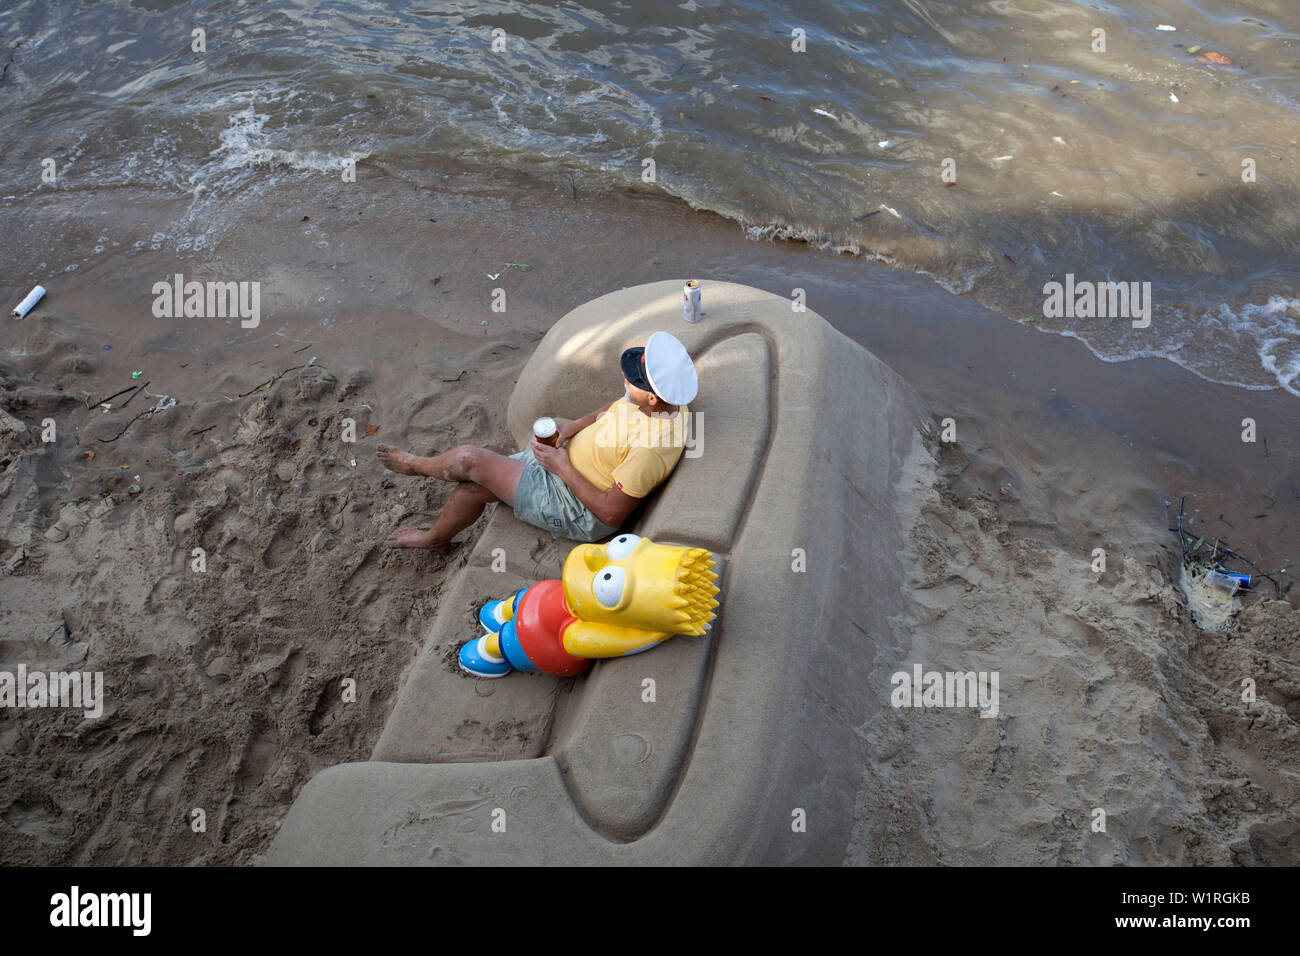 Bart Simpson model relaxing on sand sofa, southbank London - Stock Image